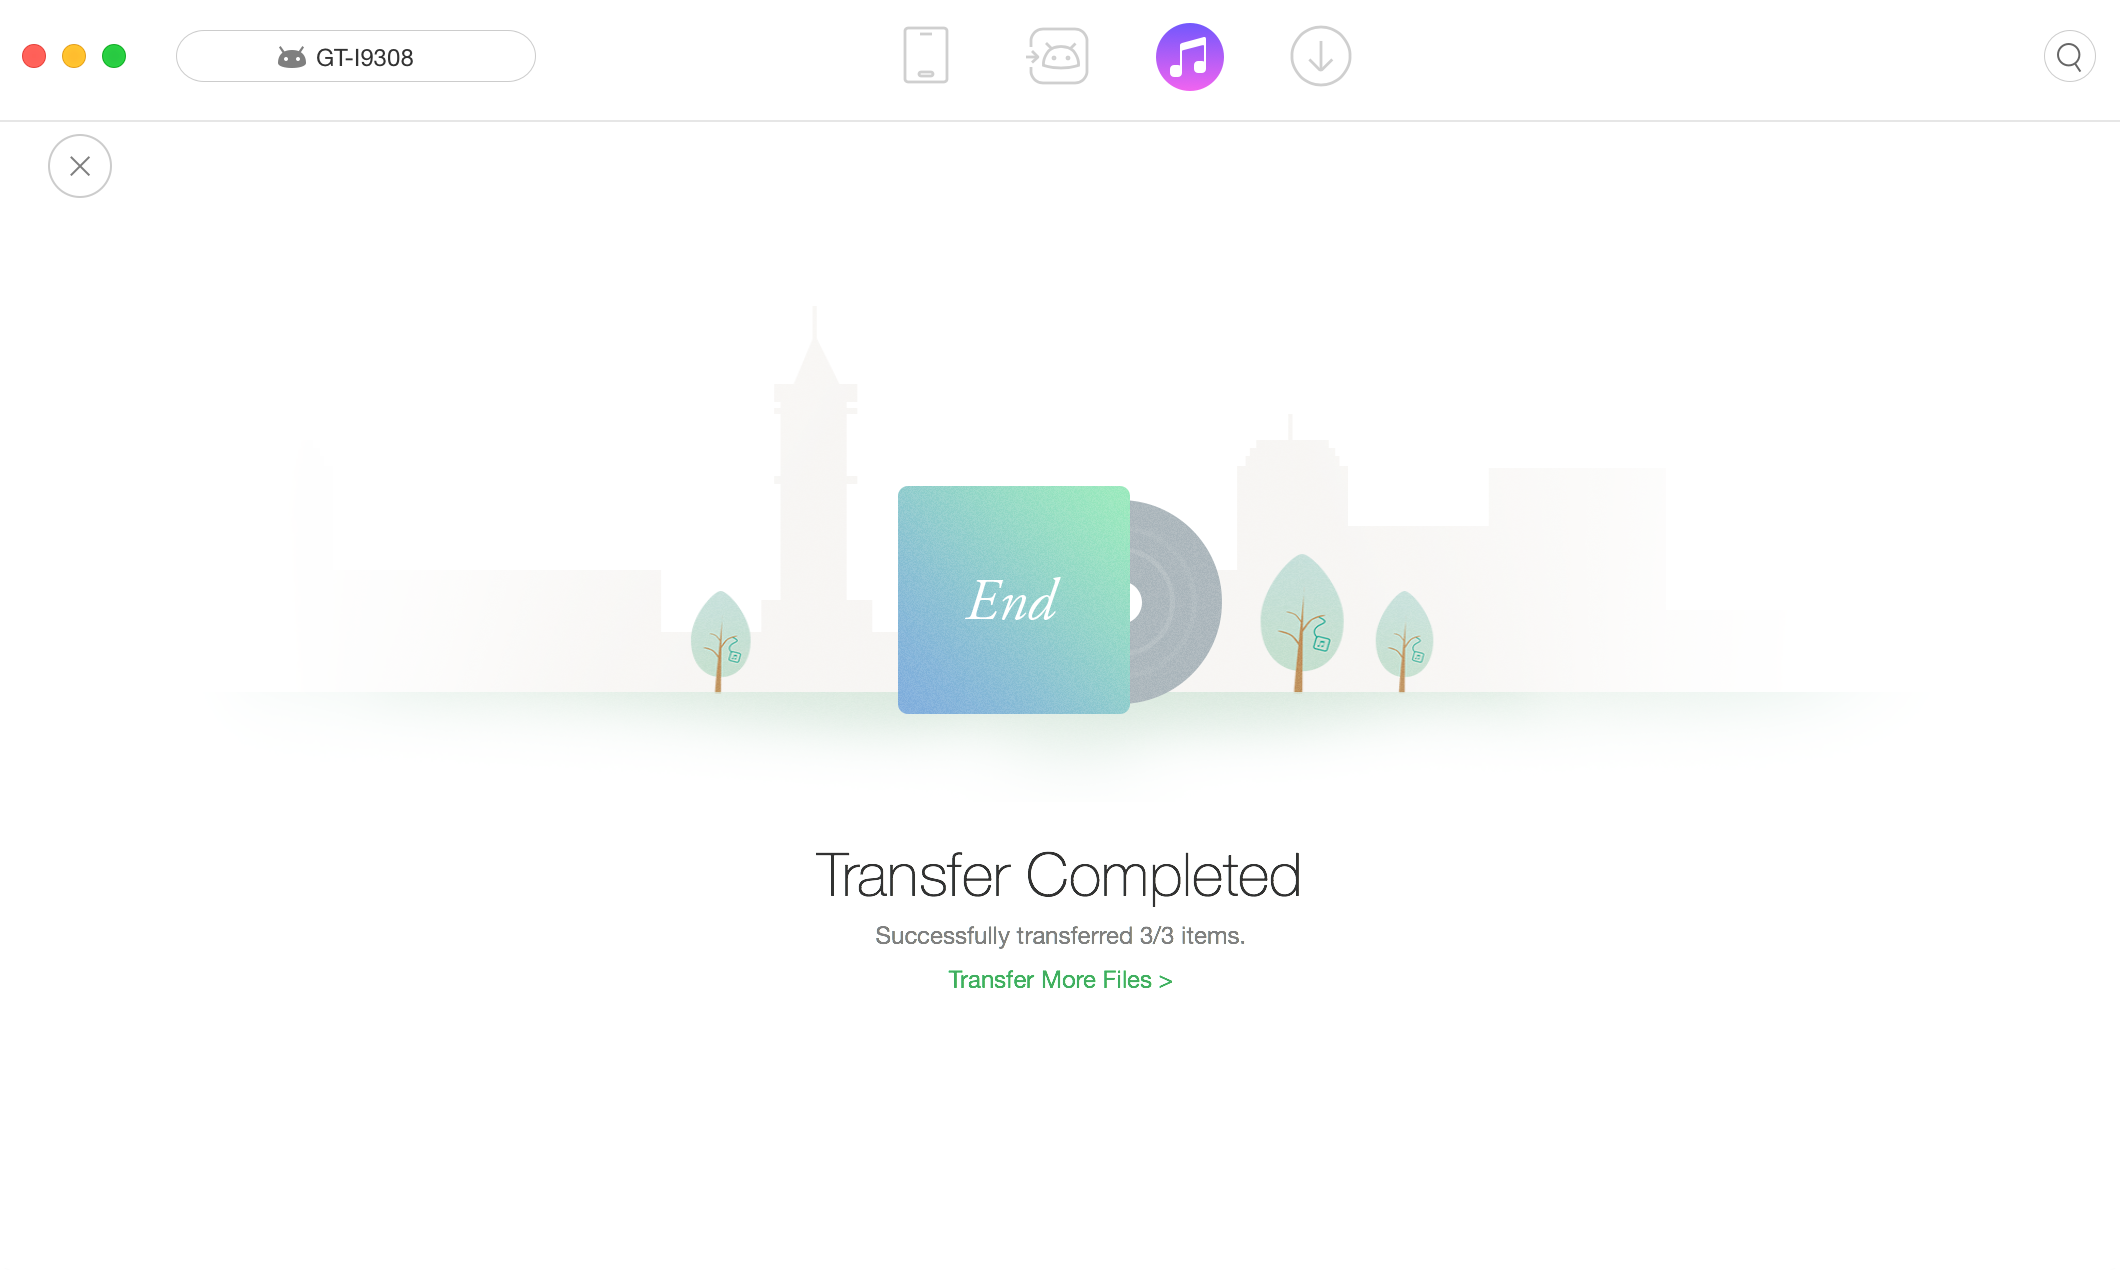 Files Transfer Completed Page